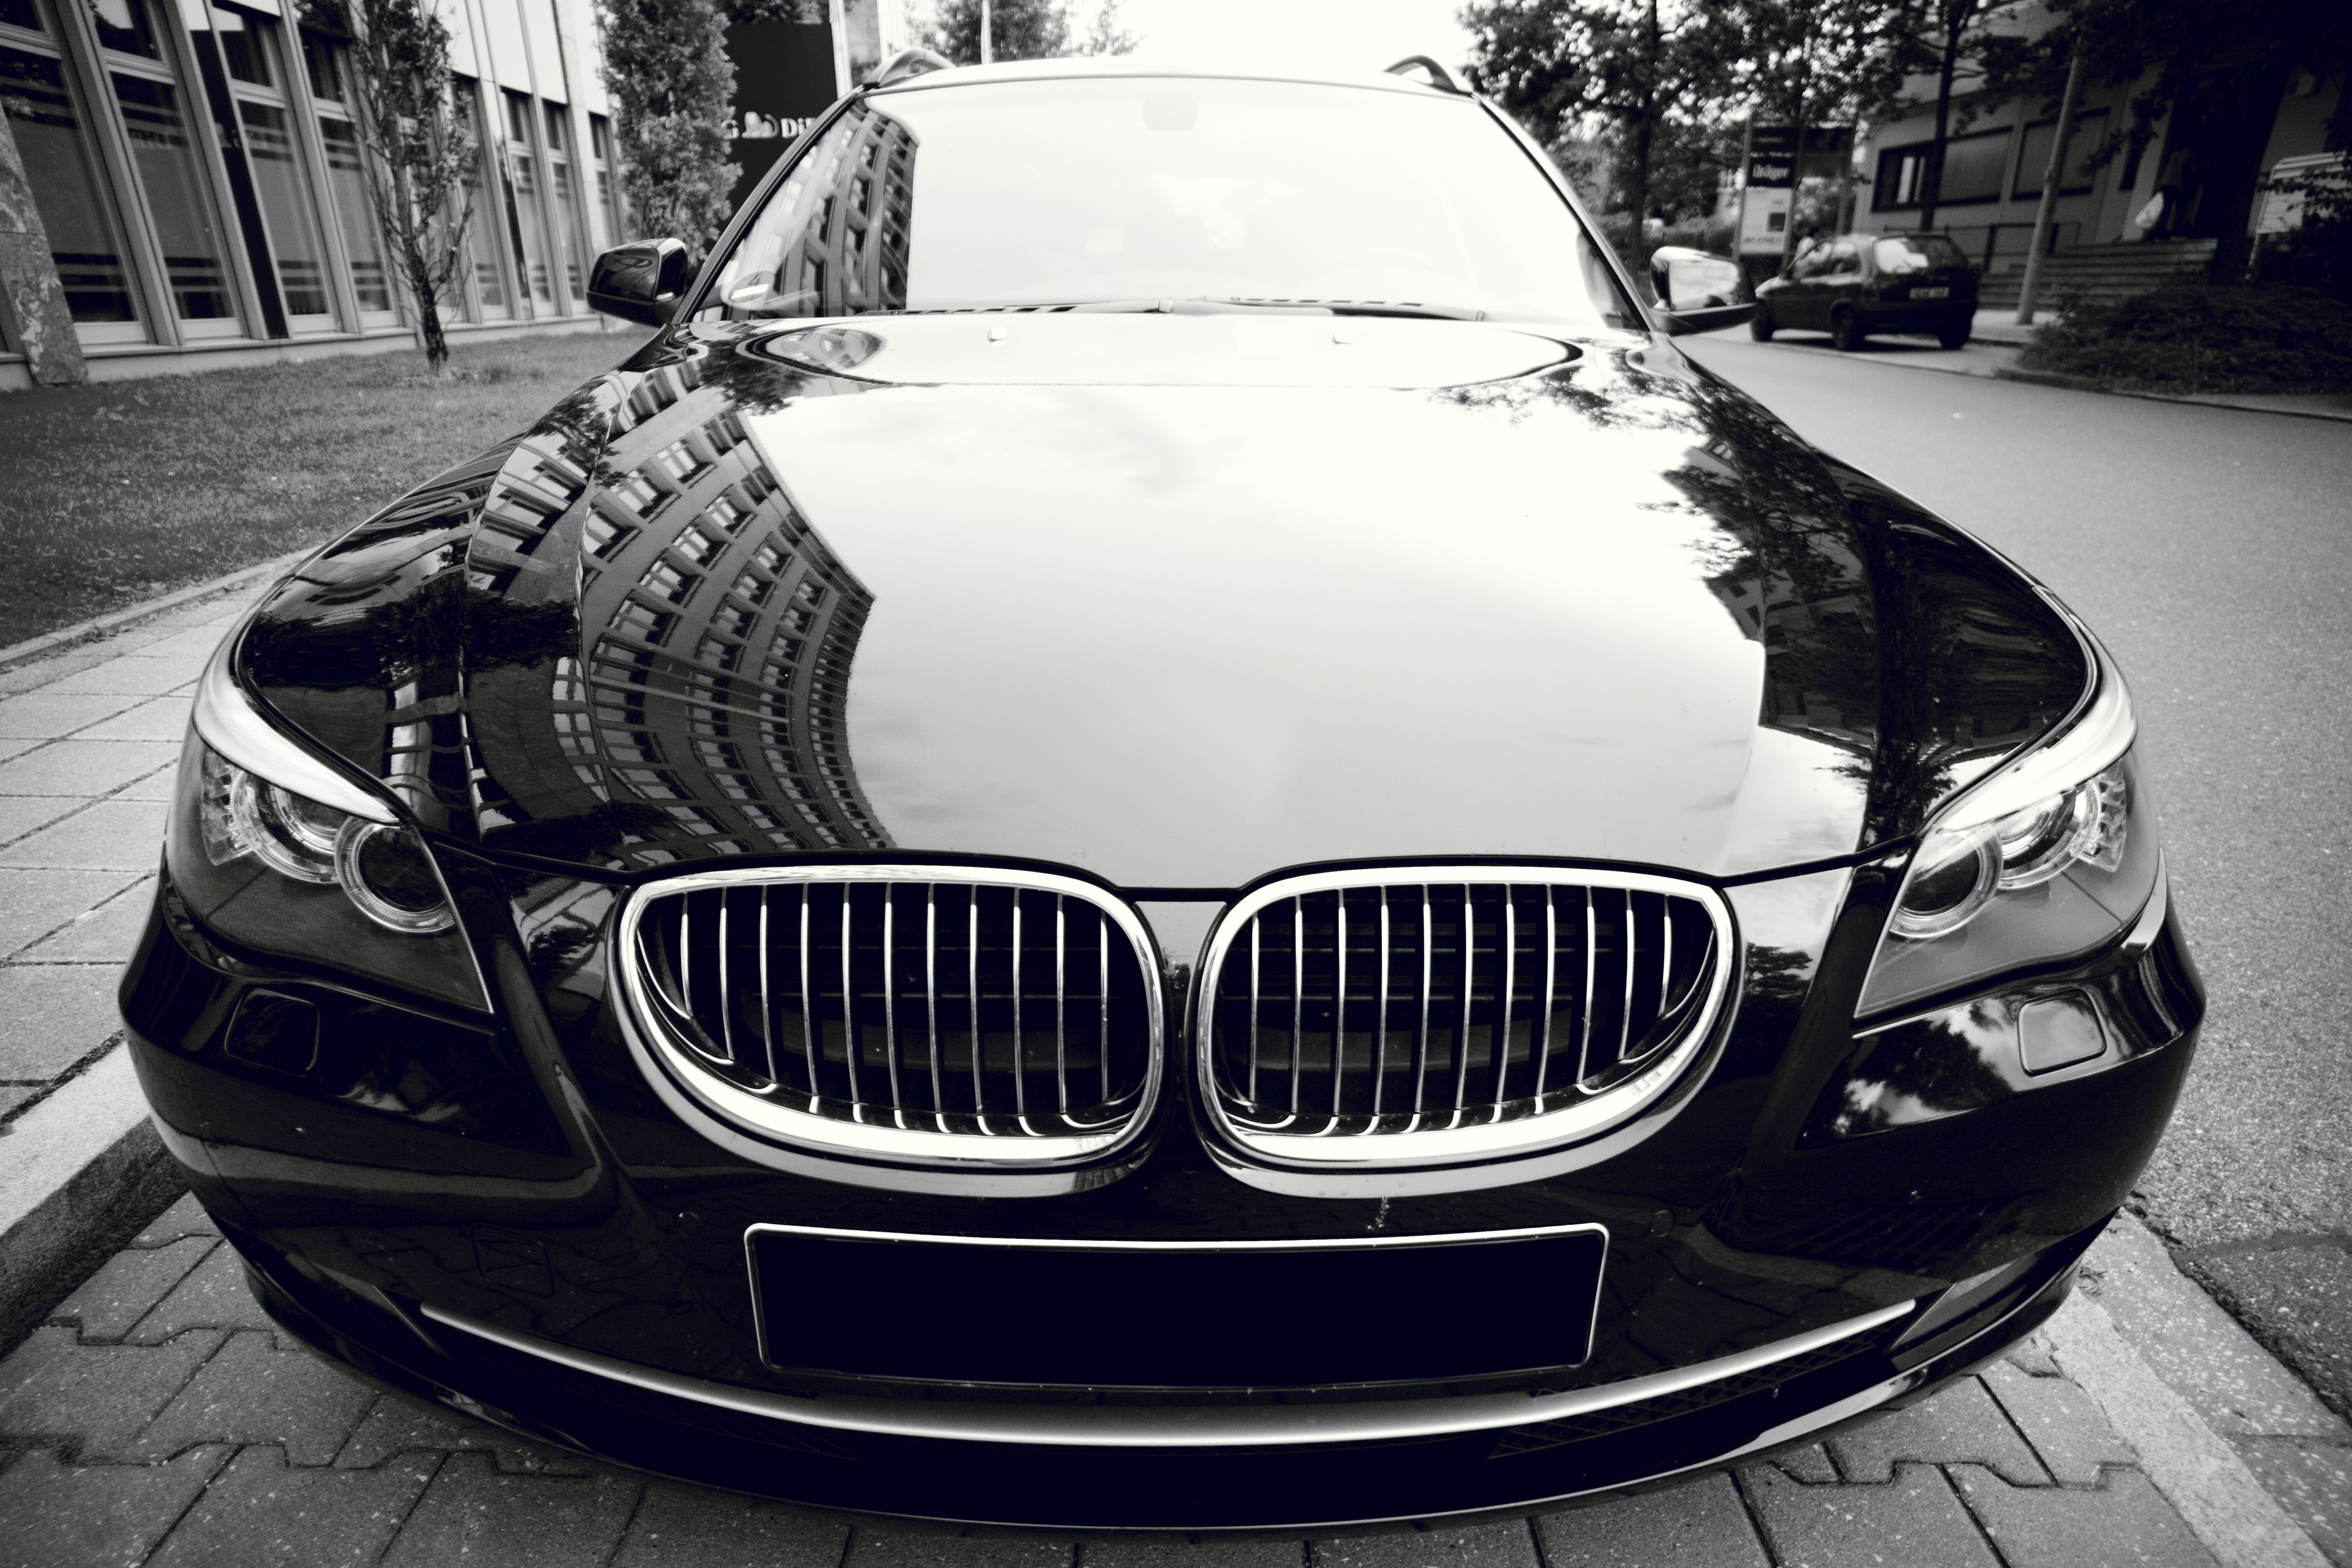 Black Mercedes Benz Car 183 Free Stock Photo